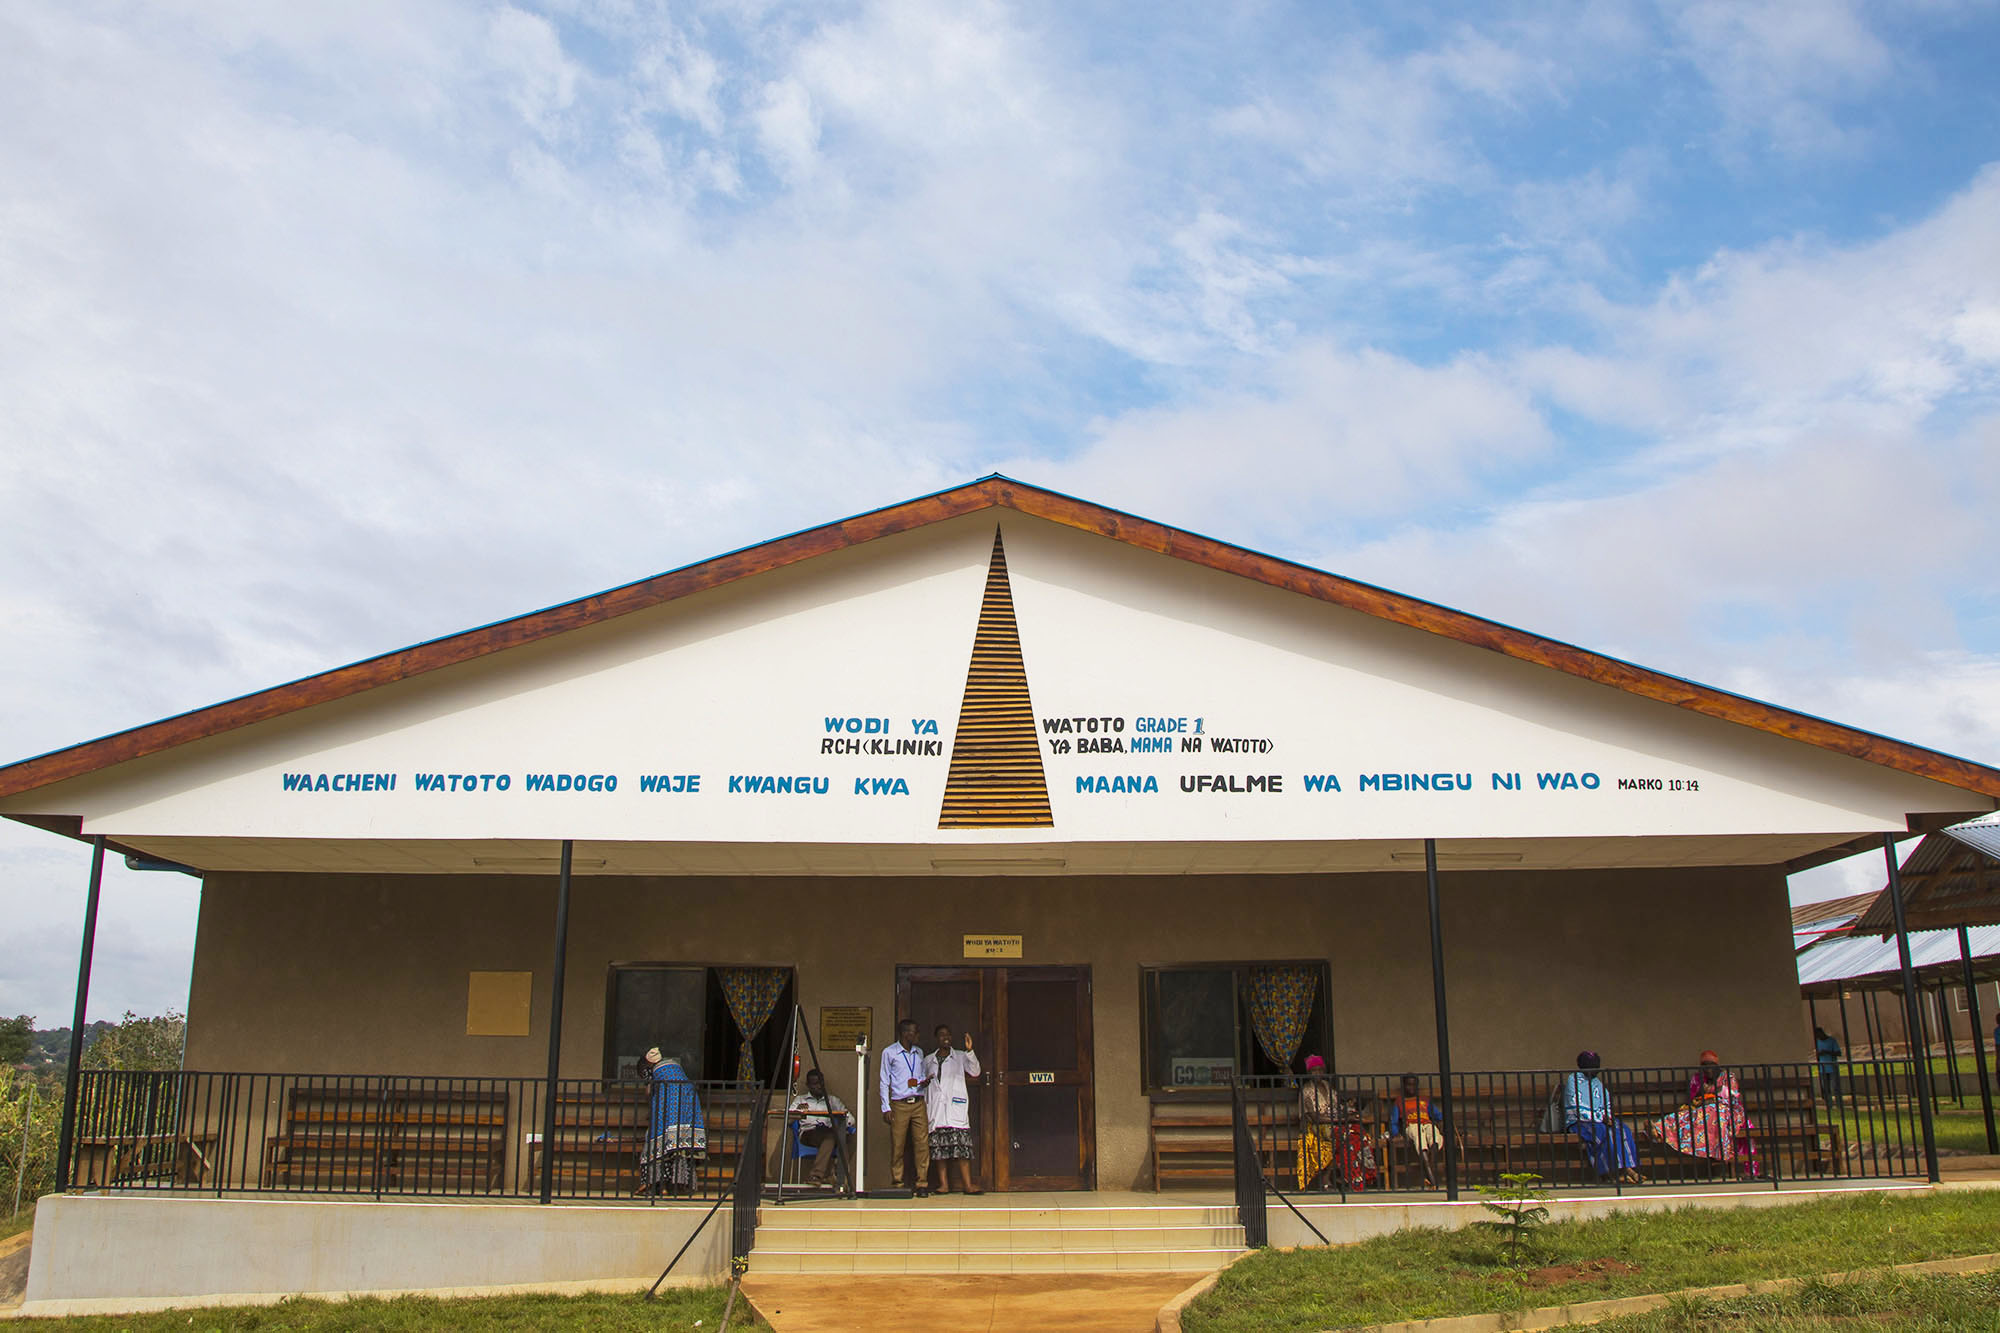 The Kigoma Baptist Hospital in Tanzania has become a beacon of hope to the surrounding area, thanks to the way churches support IMB medical missionaries Larry and Sally Pepper through giving and meeting tangible needs. IMB photo